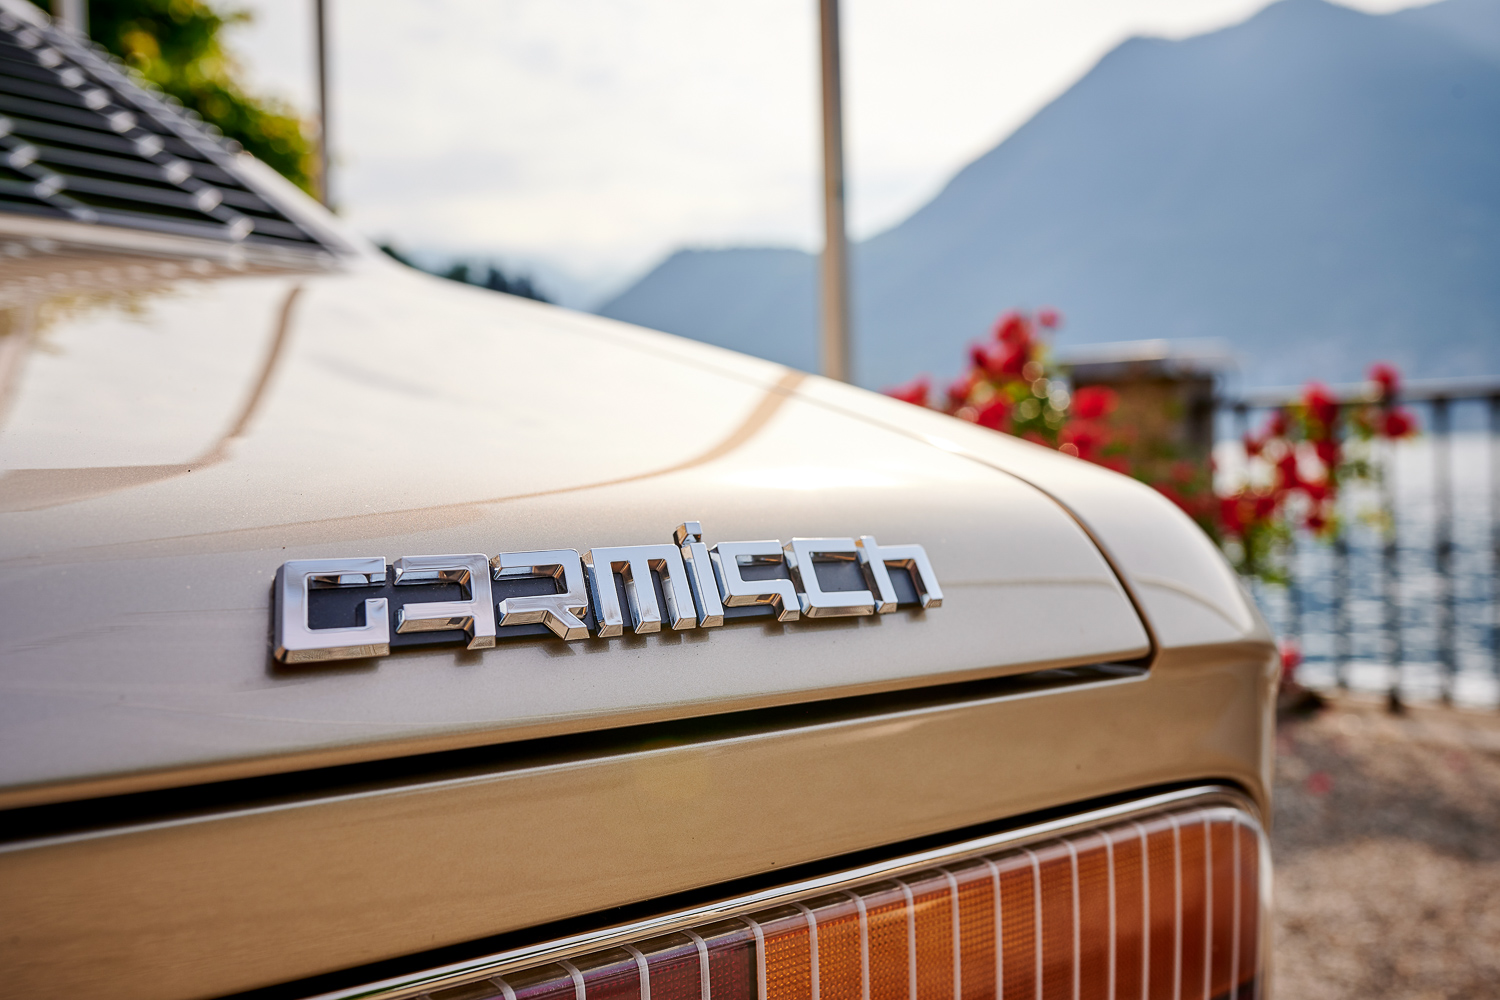 BMW Garmisch badge